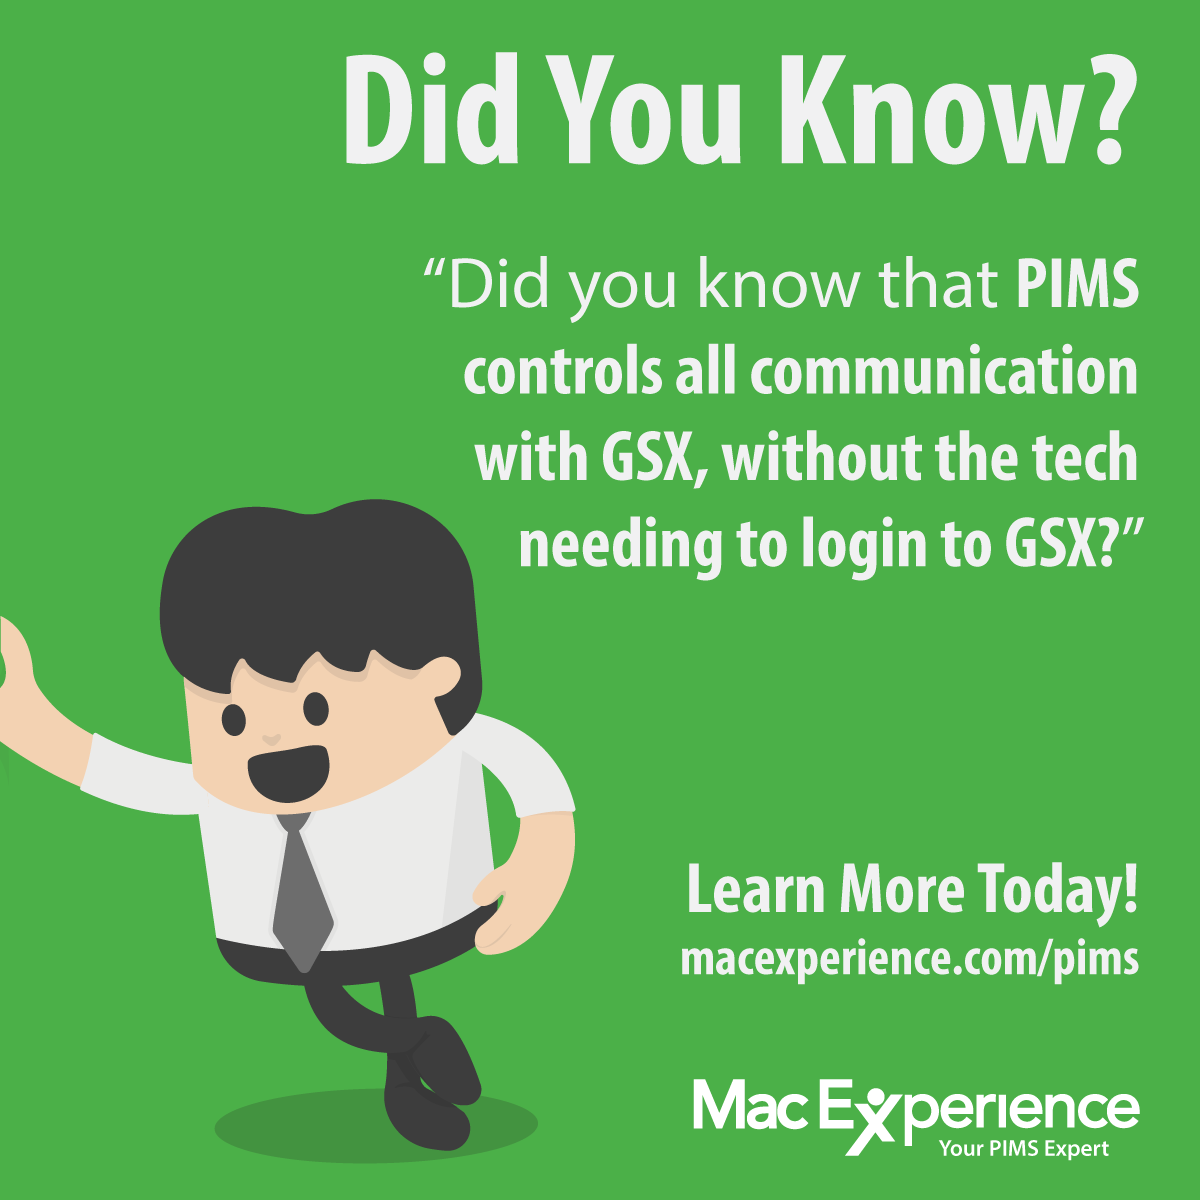 PIMS works with Apple GSX — MacExperience